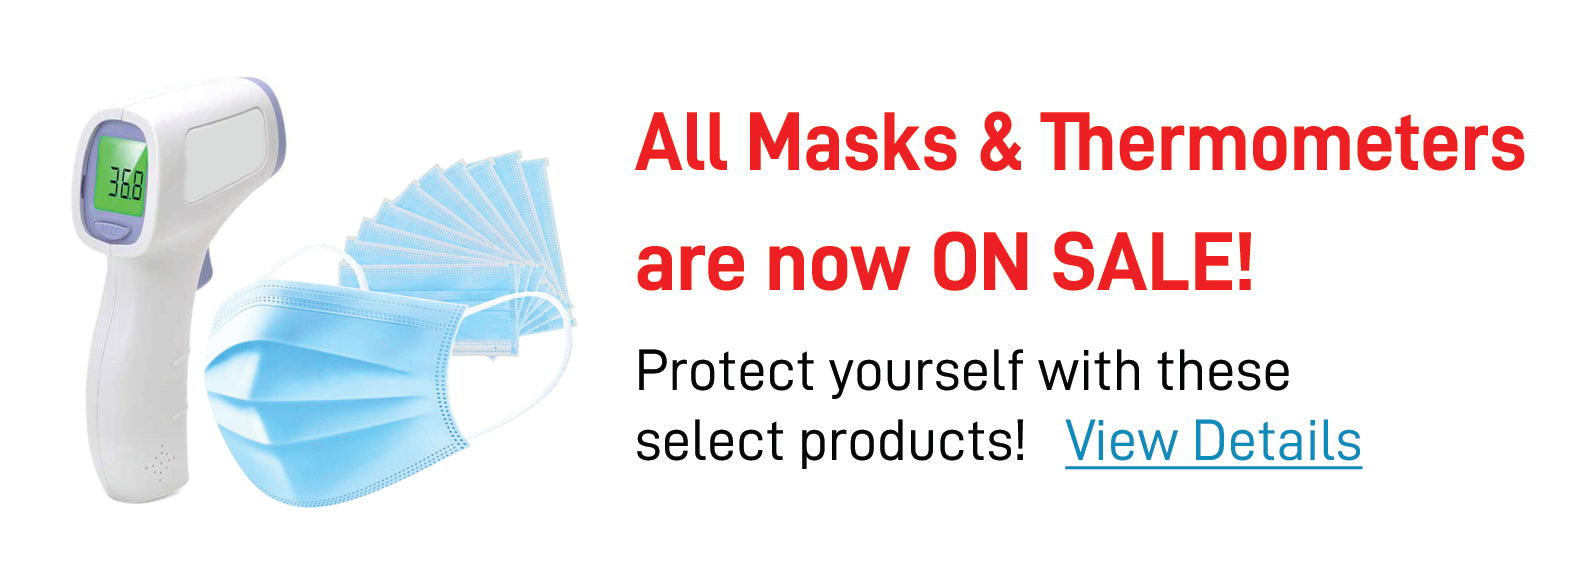 All Masks & Thermometers are now  ON SALE!